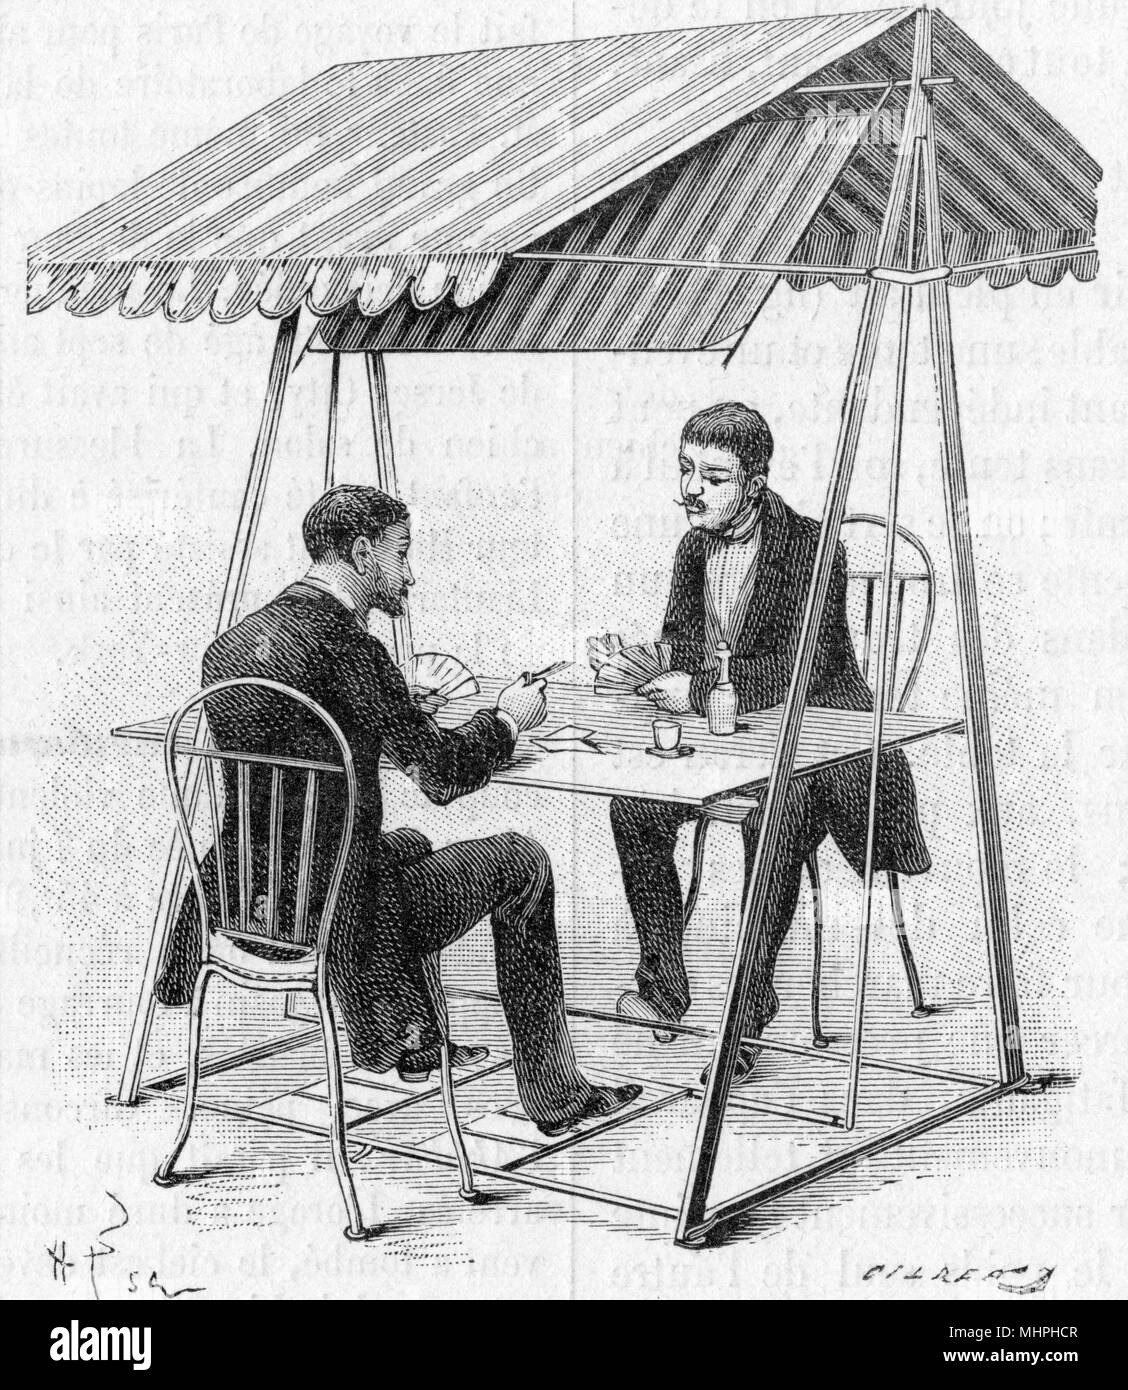 "A ""punkah""-type of ventilator for keep cool during warm weather or heat wave, comprising of a large fan flap set above a table, operated by foot pedals. Perfect for an al-fresco game of cards!     Date: 1886 - Stock Image"